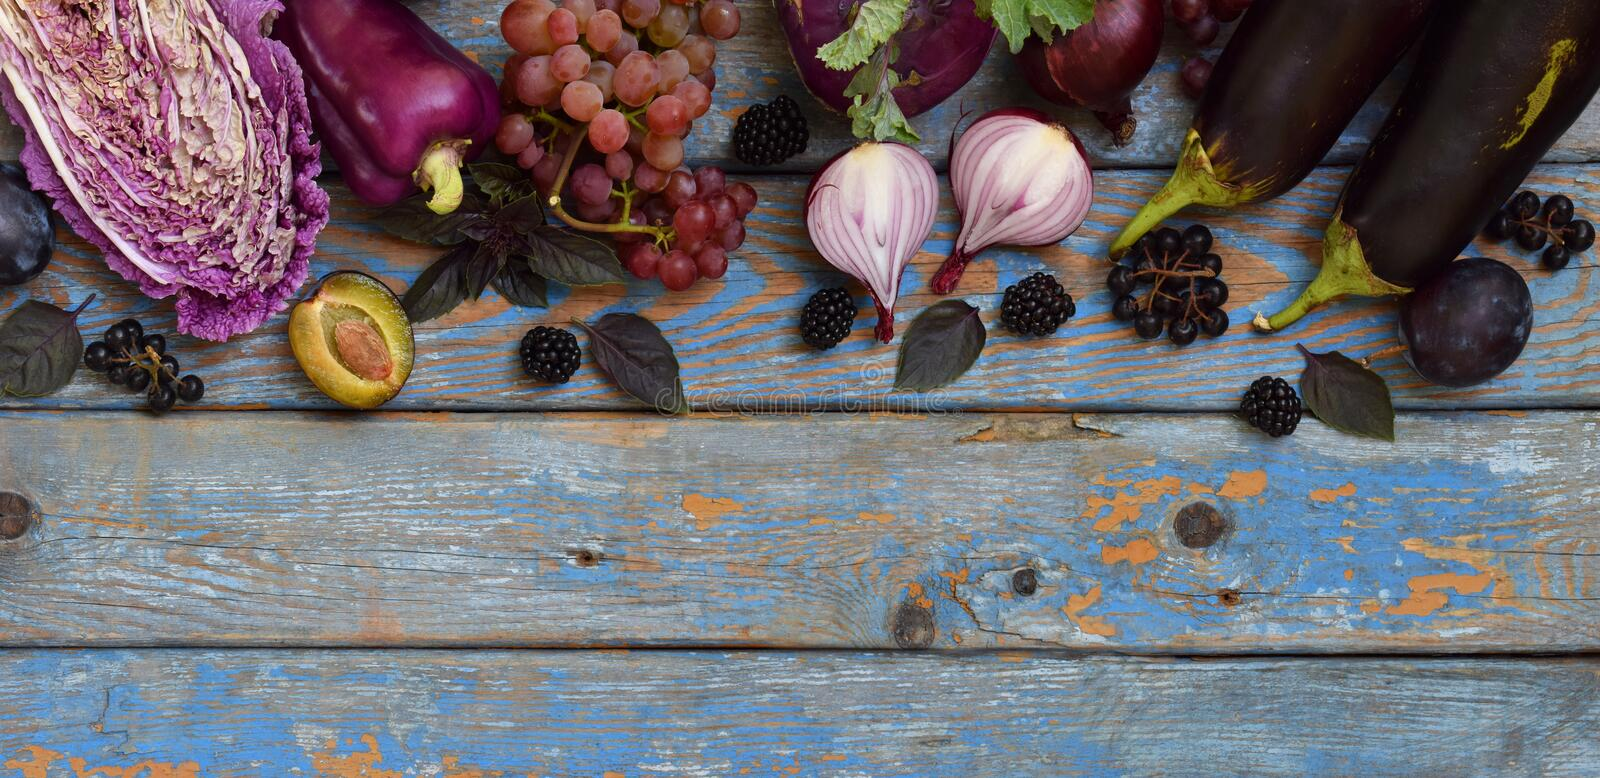 Purple vegetables and fruits. Plum, eggplant, pepper, blueberries, rowanberry. Violet organic foods high in antioxidants, anthocya. Nins and vitamins. Raw food stock photography